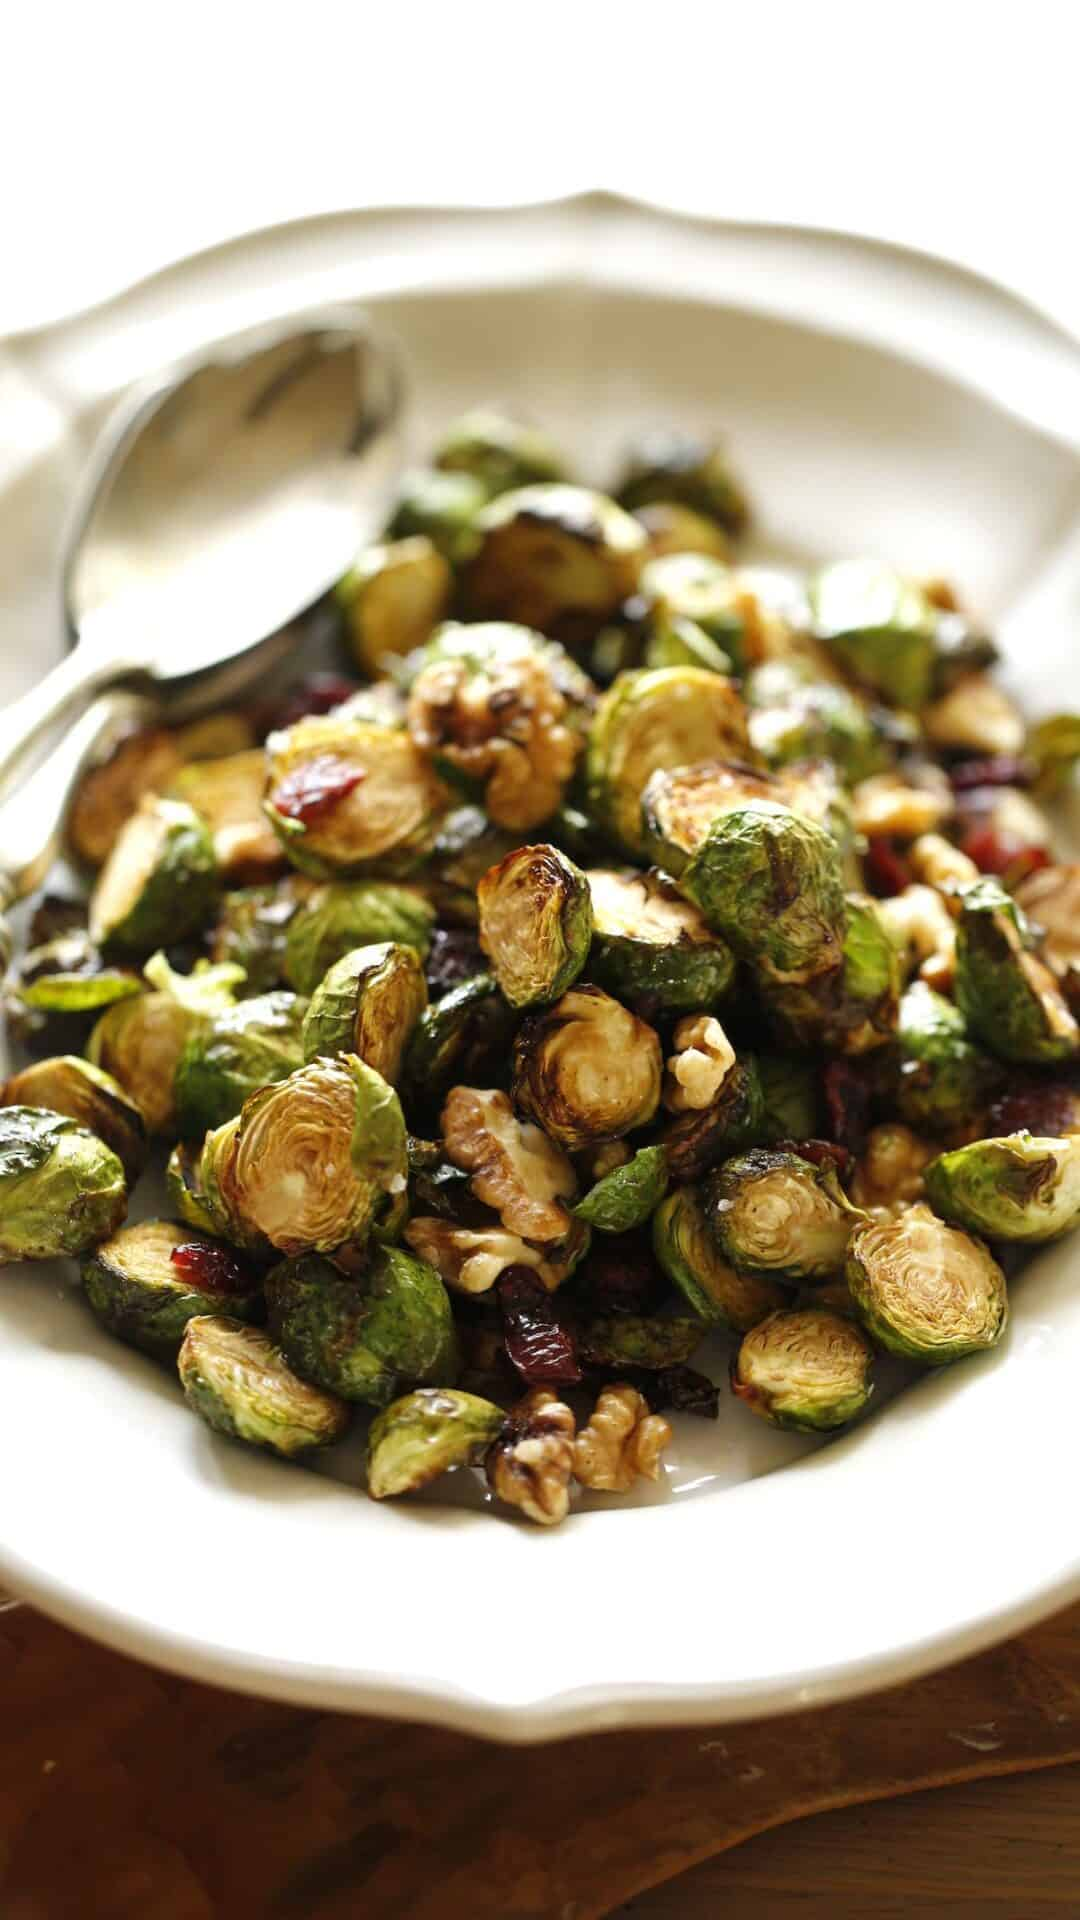 Brussel sprouts on a platter with a silver serving spoon